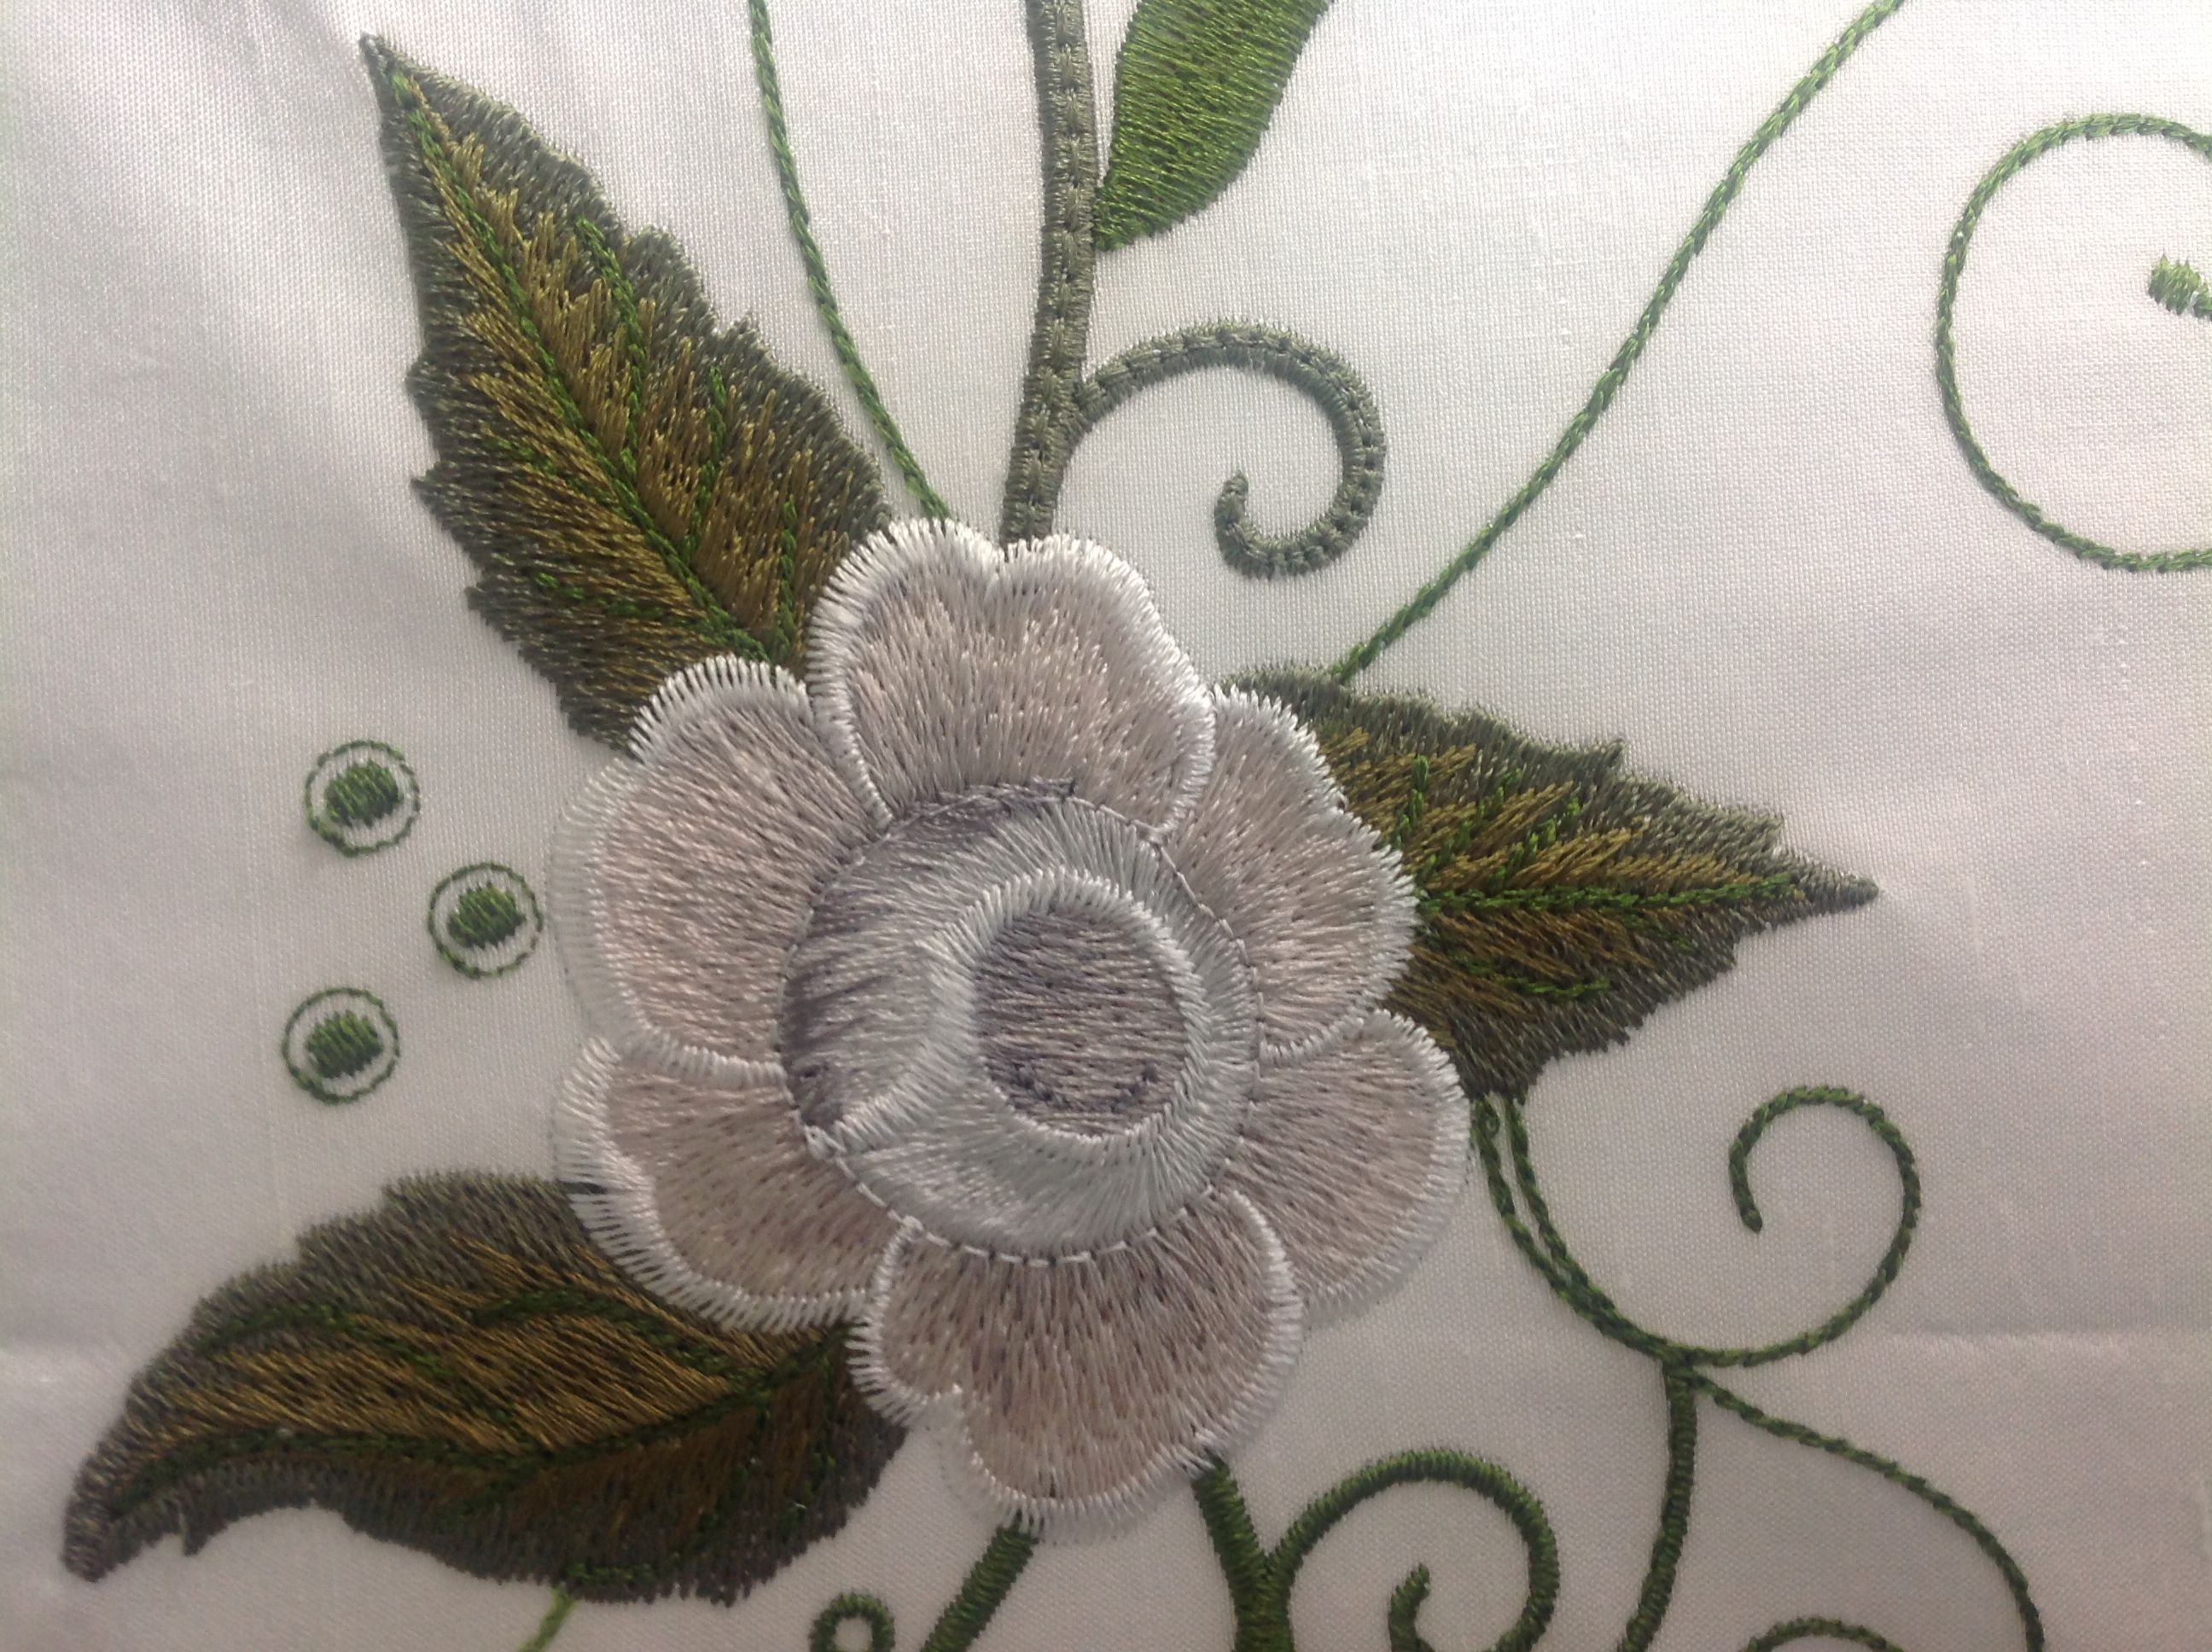 Try the Embroiderer's Prayer roses in shade of grey and white.